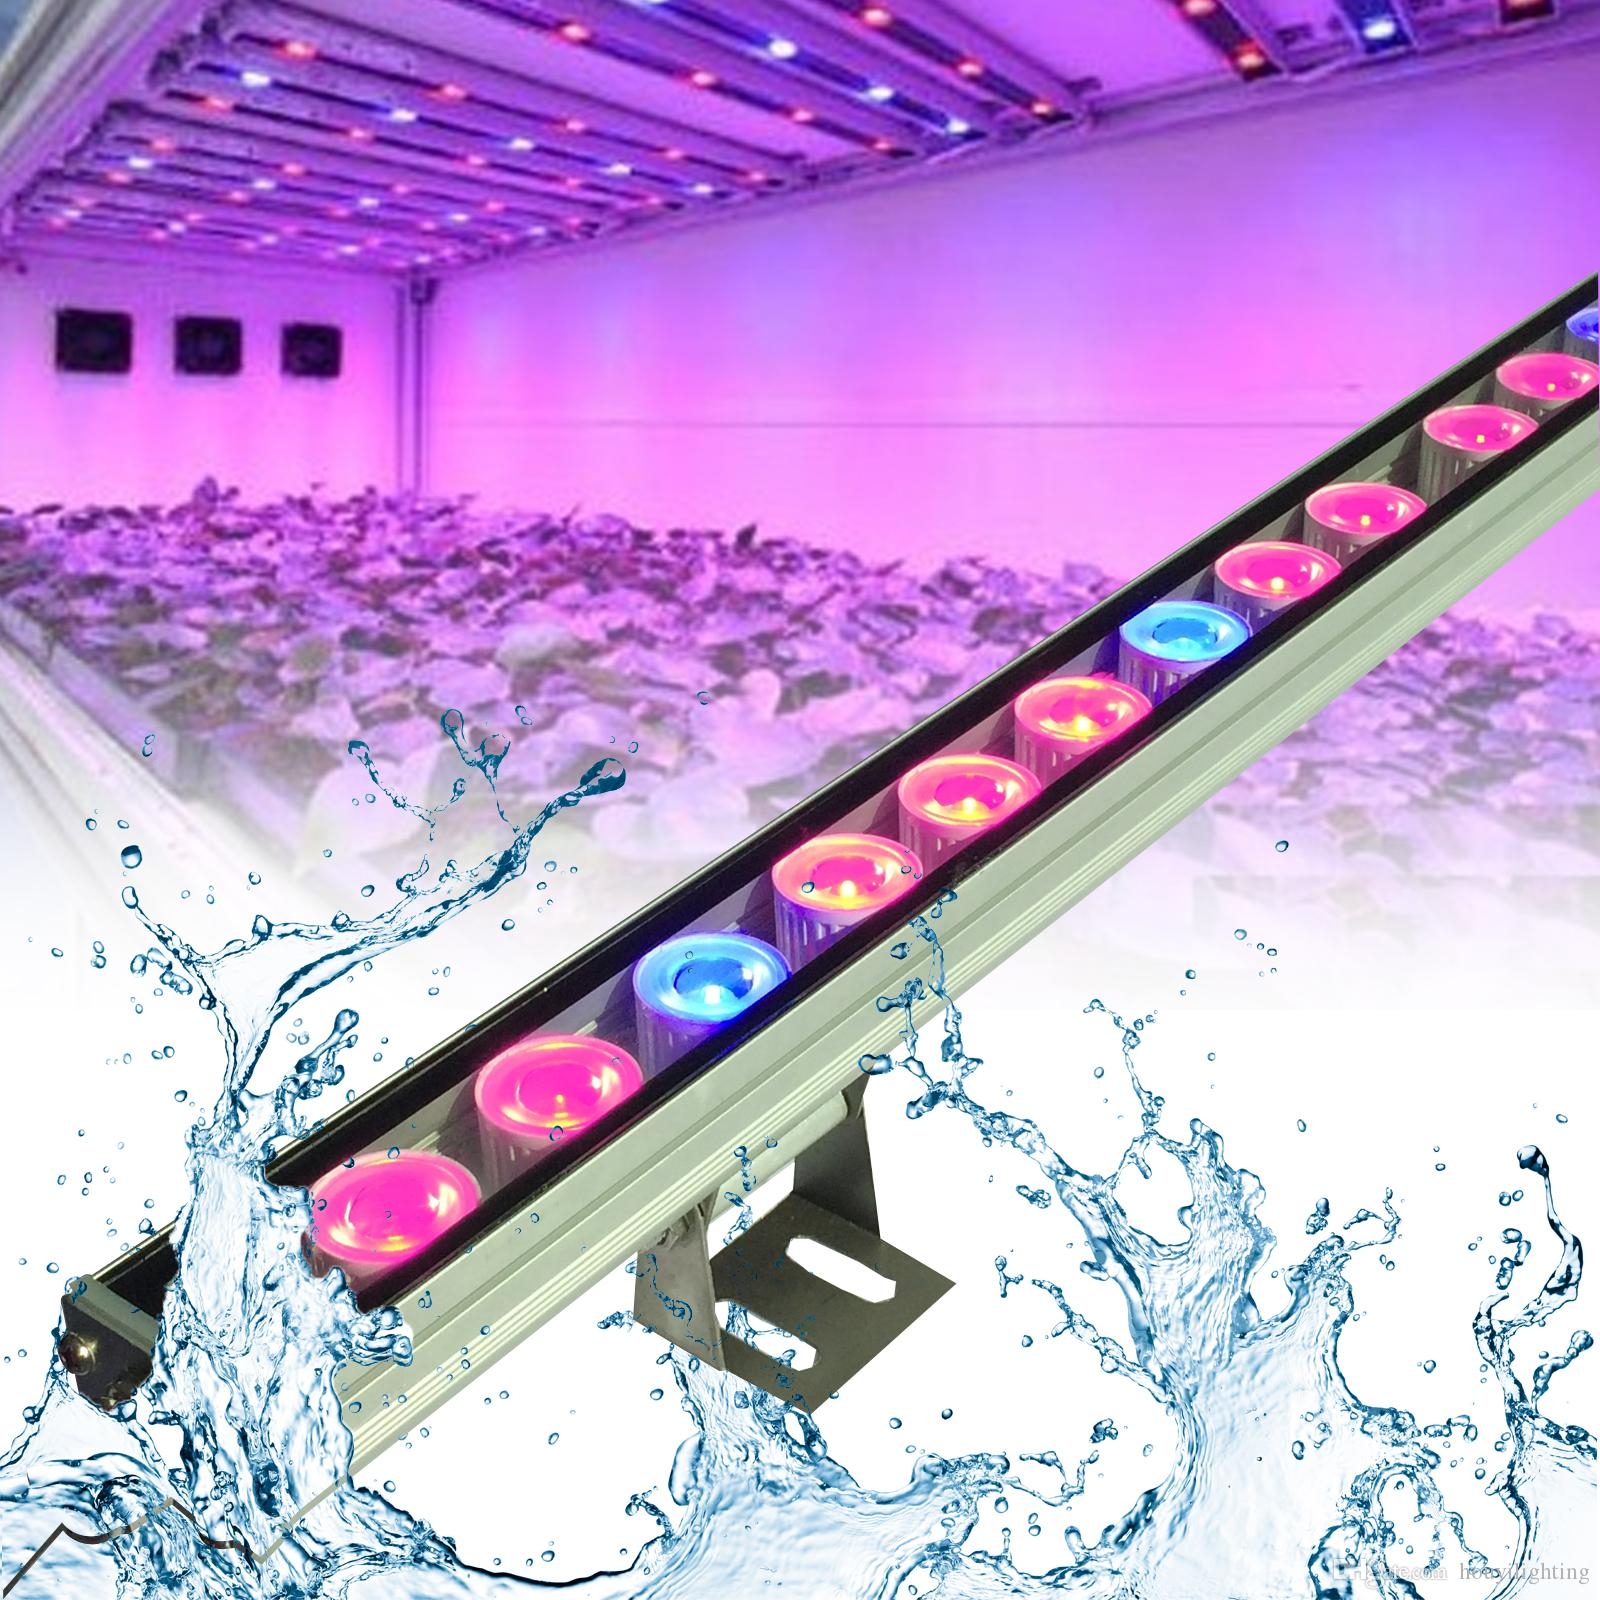 Cheapest Led Light Bar Hot sale led grow light bar 108w hydroponic led grow light strip red hot sale led grow light bar 108w hydroponic led grow light strip redblue for indoor greenhouse plant veg grow flower strip lamp waterproof 54w81w108w led audiocablefo